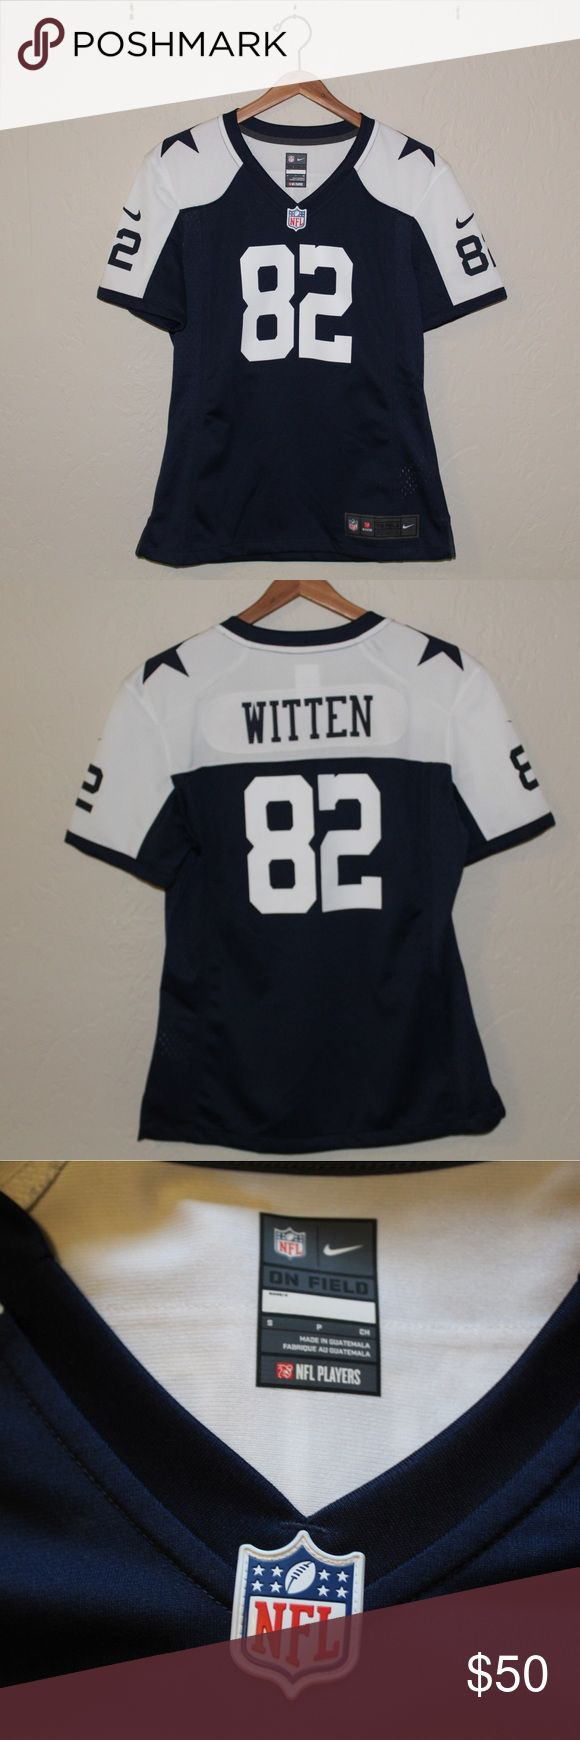 Dallas Cowboys Football Jersey In excellent condition! Worn once! This Nike Jason Witten Jersey is so sporty! Real NFL merchandise Nike Tops Tees - Short Sleeve